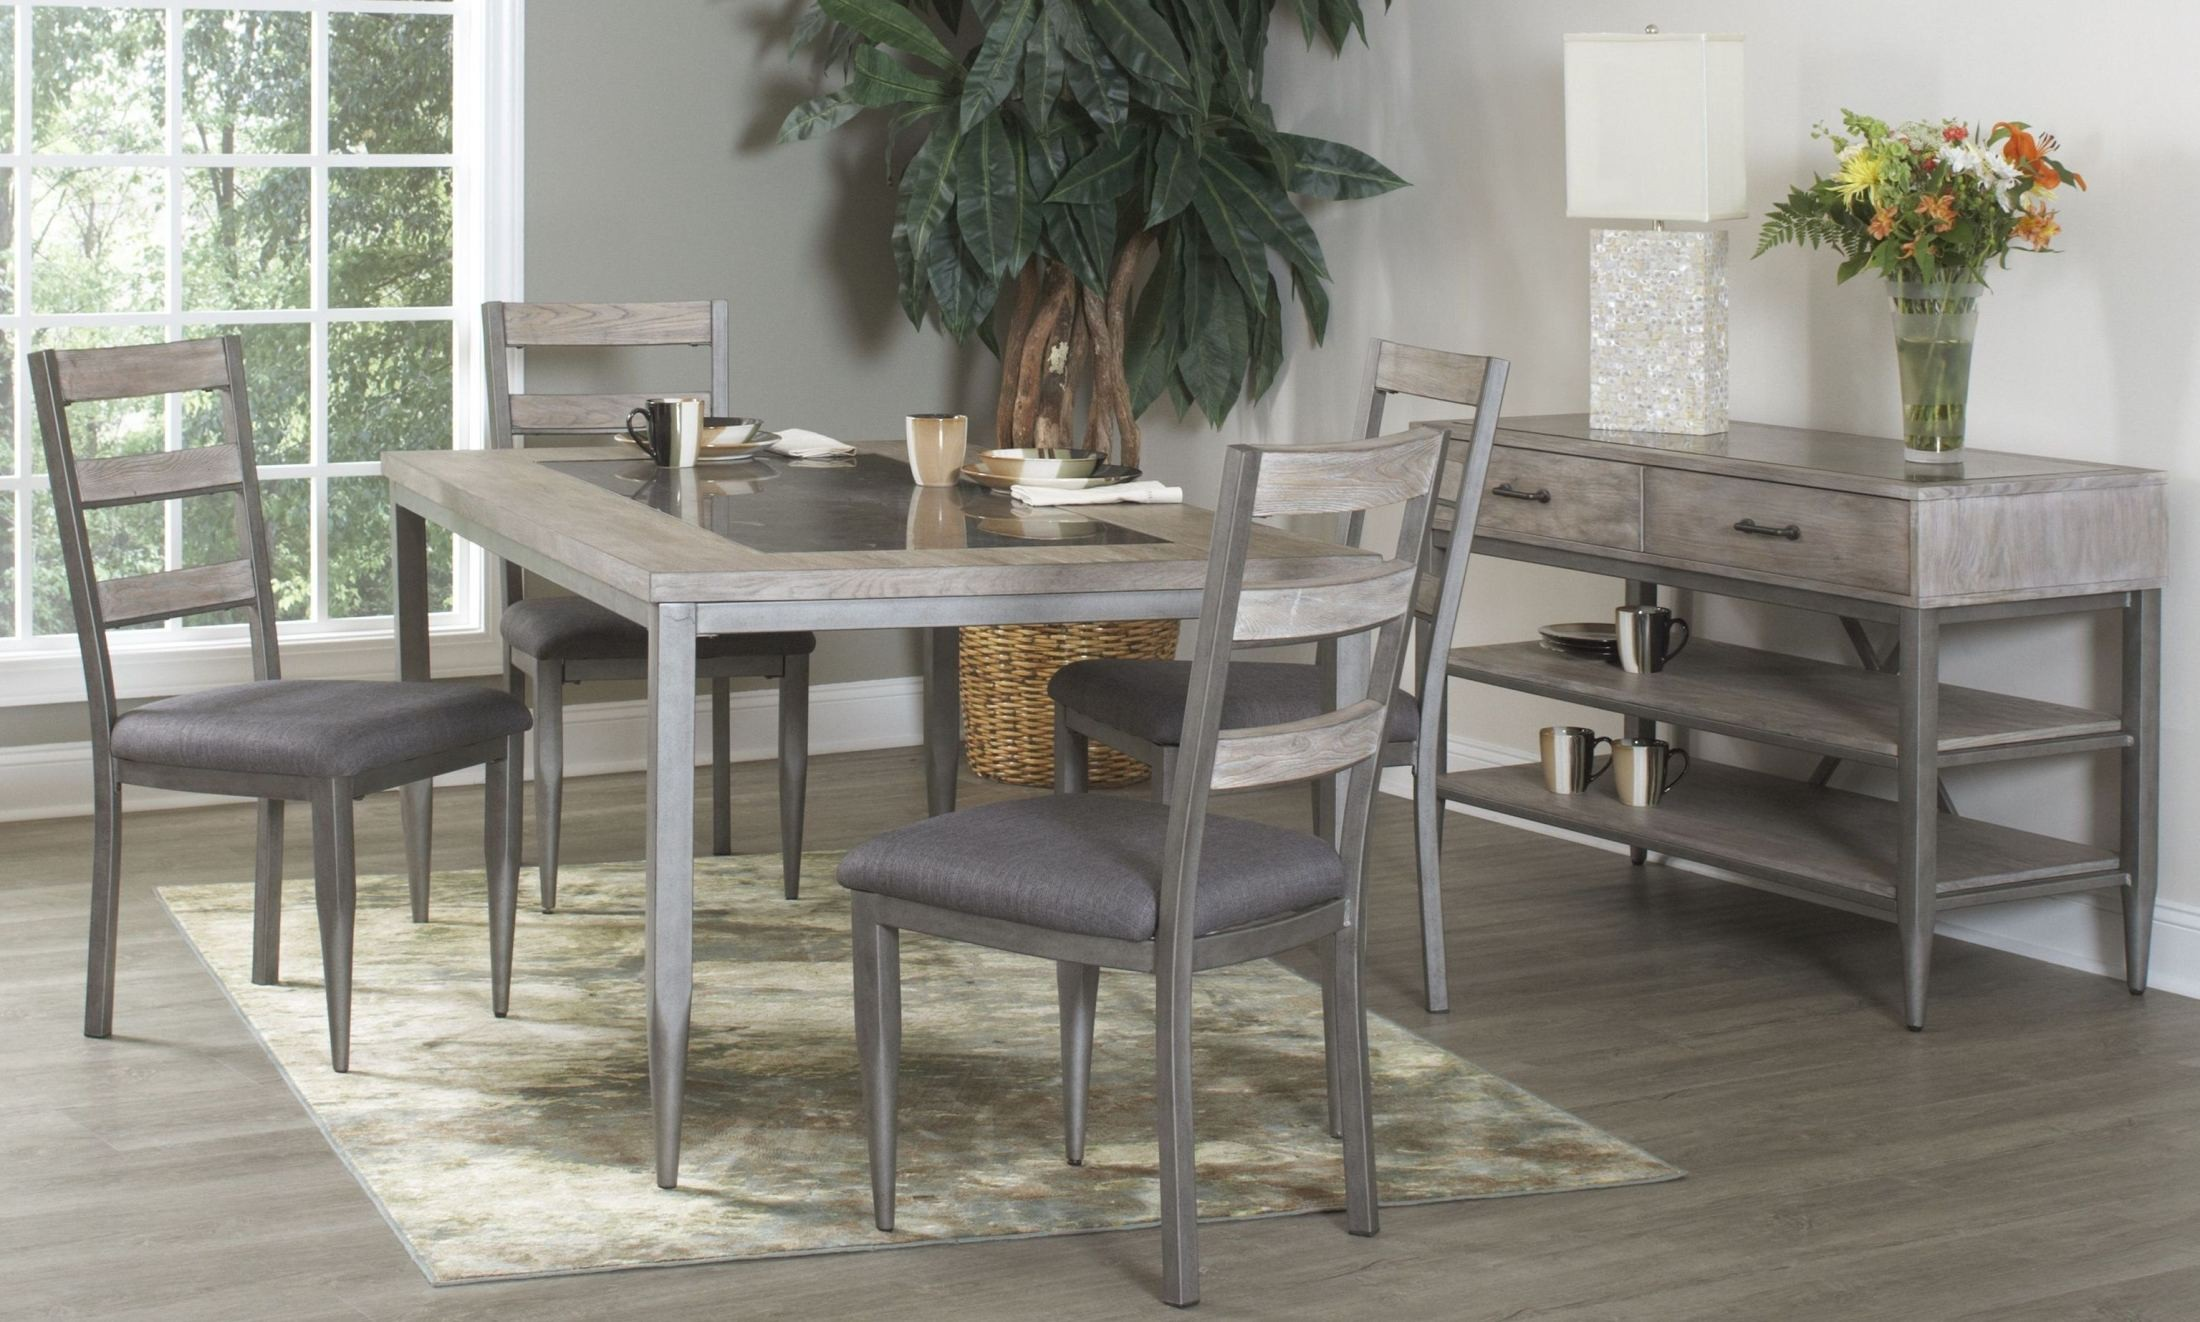 rustic metal dining chairs party city chair covers river loft oak and rectangular room